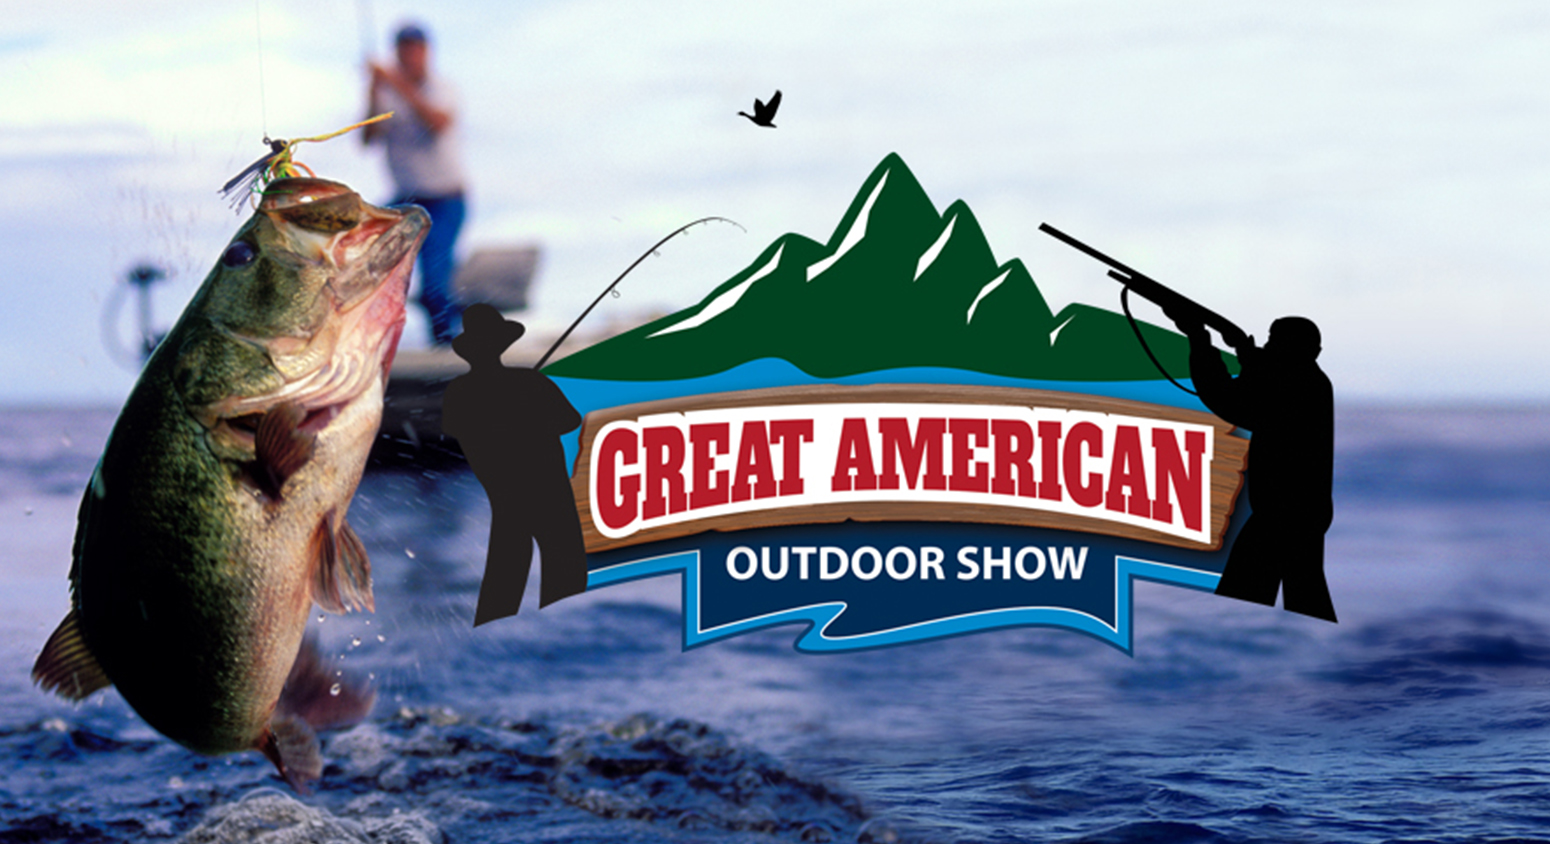 Great American Outdoor Show Events: Wednesday February 10th...